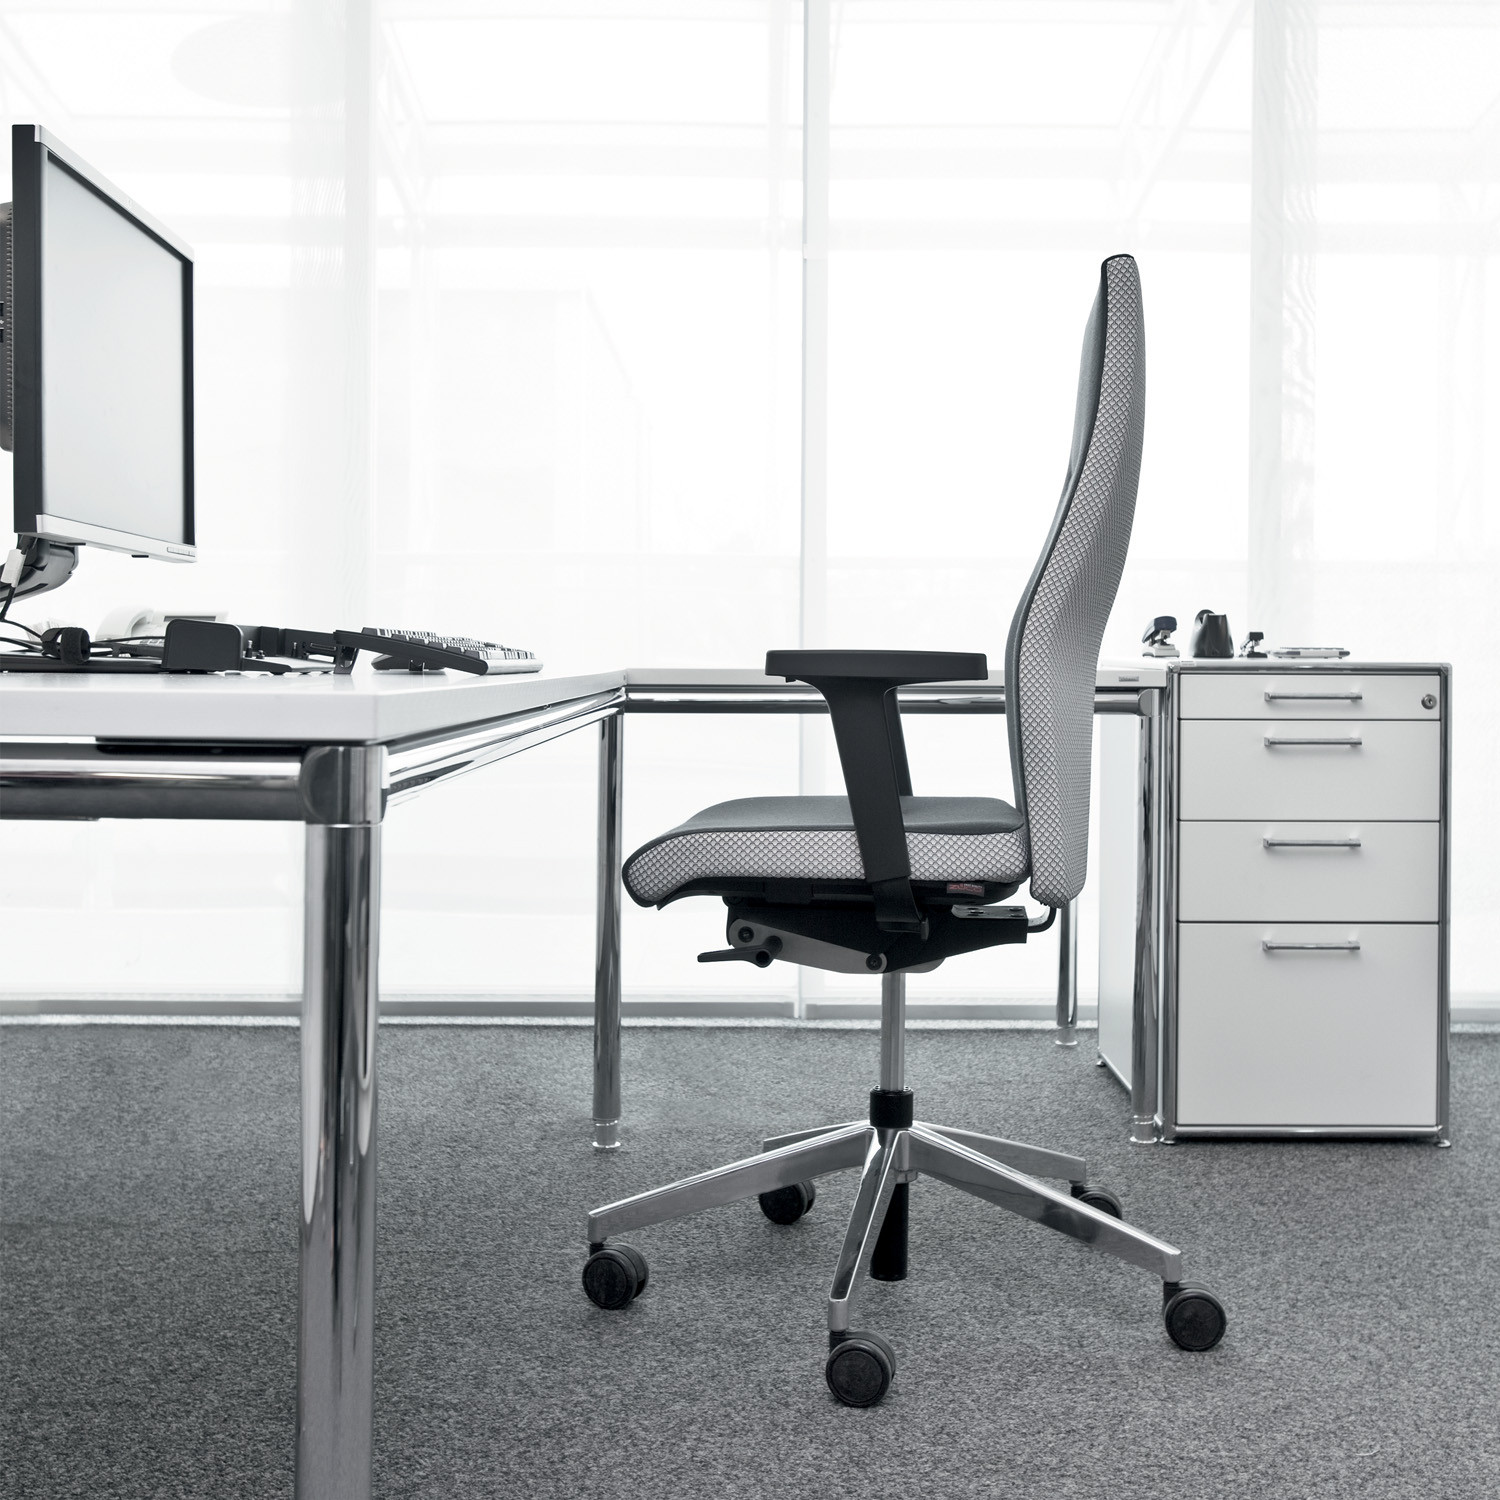 CuboFLEX Desk Chair by Zuco